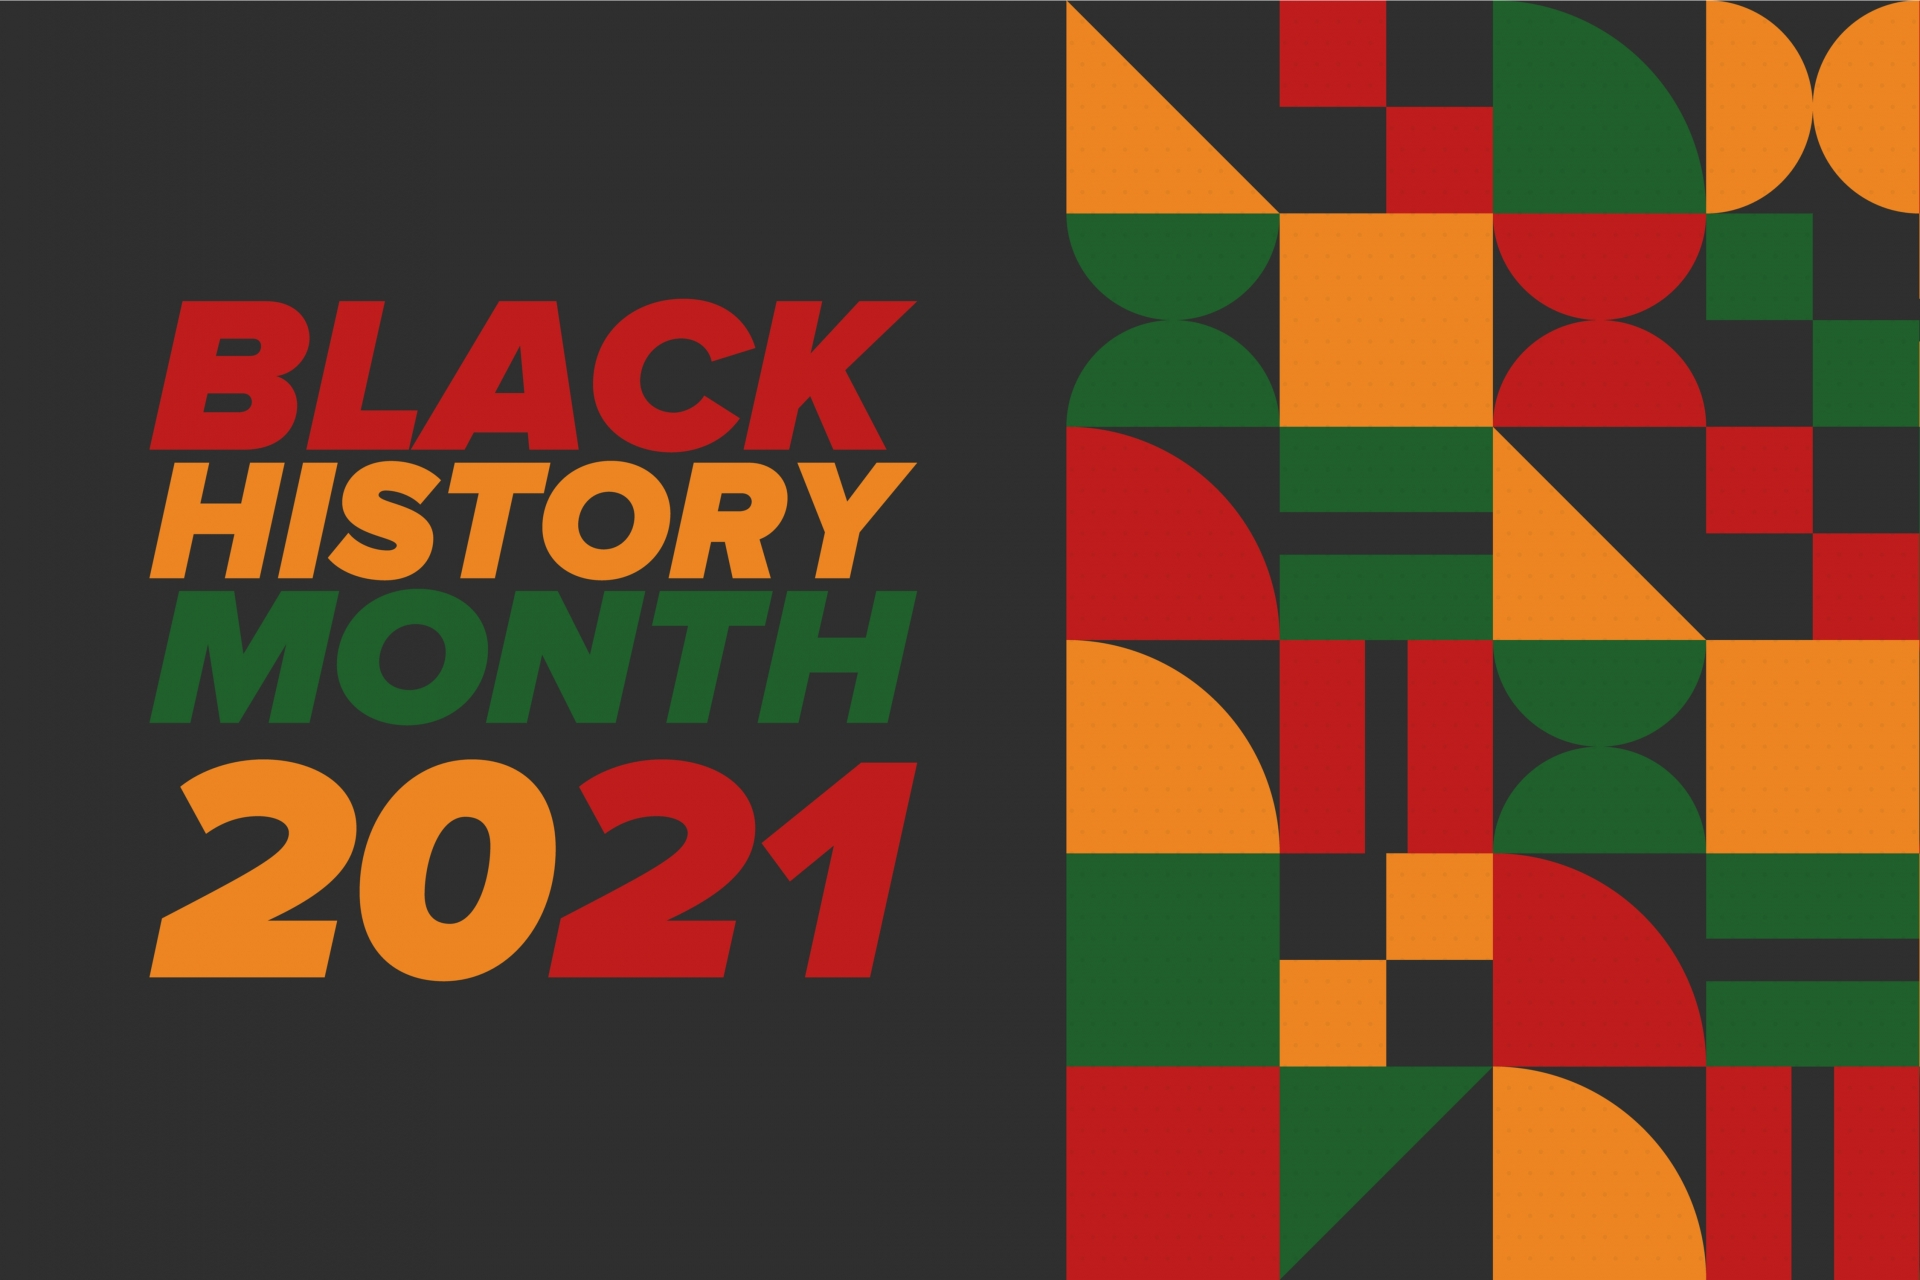 This October, we mark the UK's 34th Black History Month and give everyone the opportunity to share, celebrate and understand the impact of black heritage and culture.